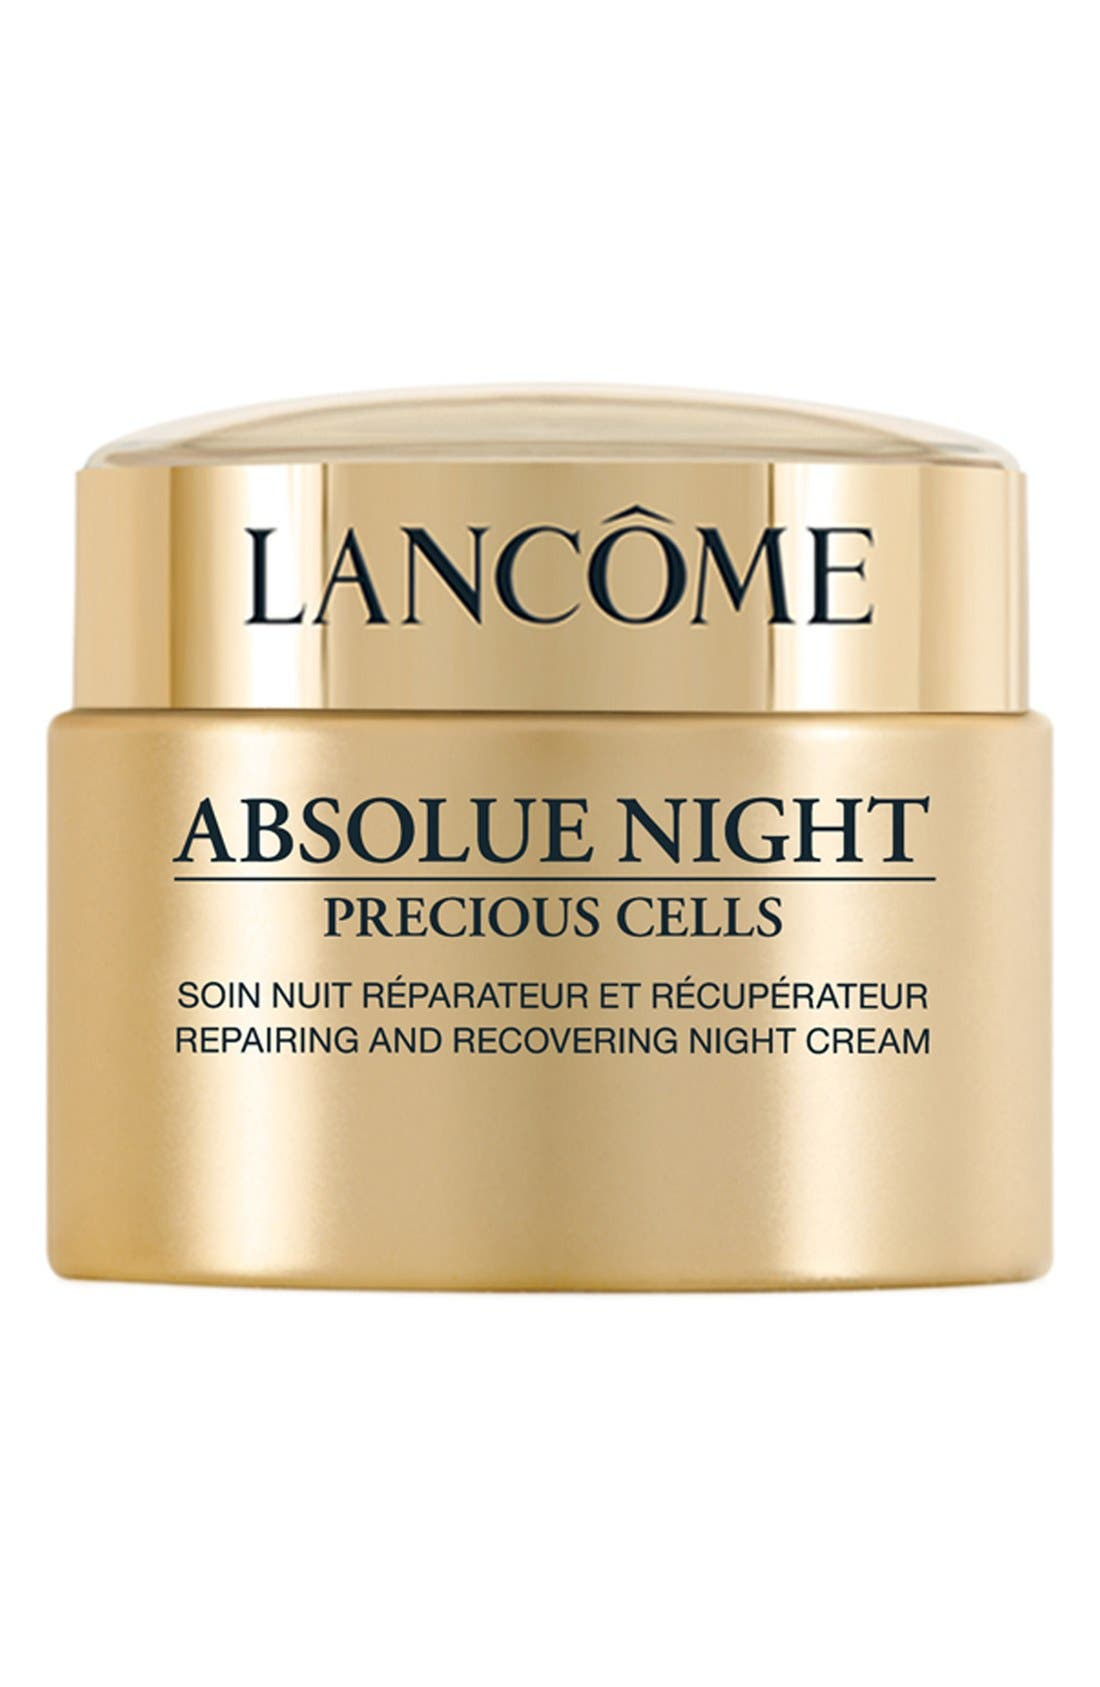 Absolue Precious Cells Repairing and Recovering Night Moisturizer Cream,                         Main,                         color, NO COLOR